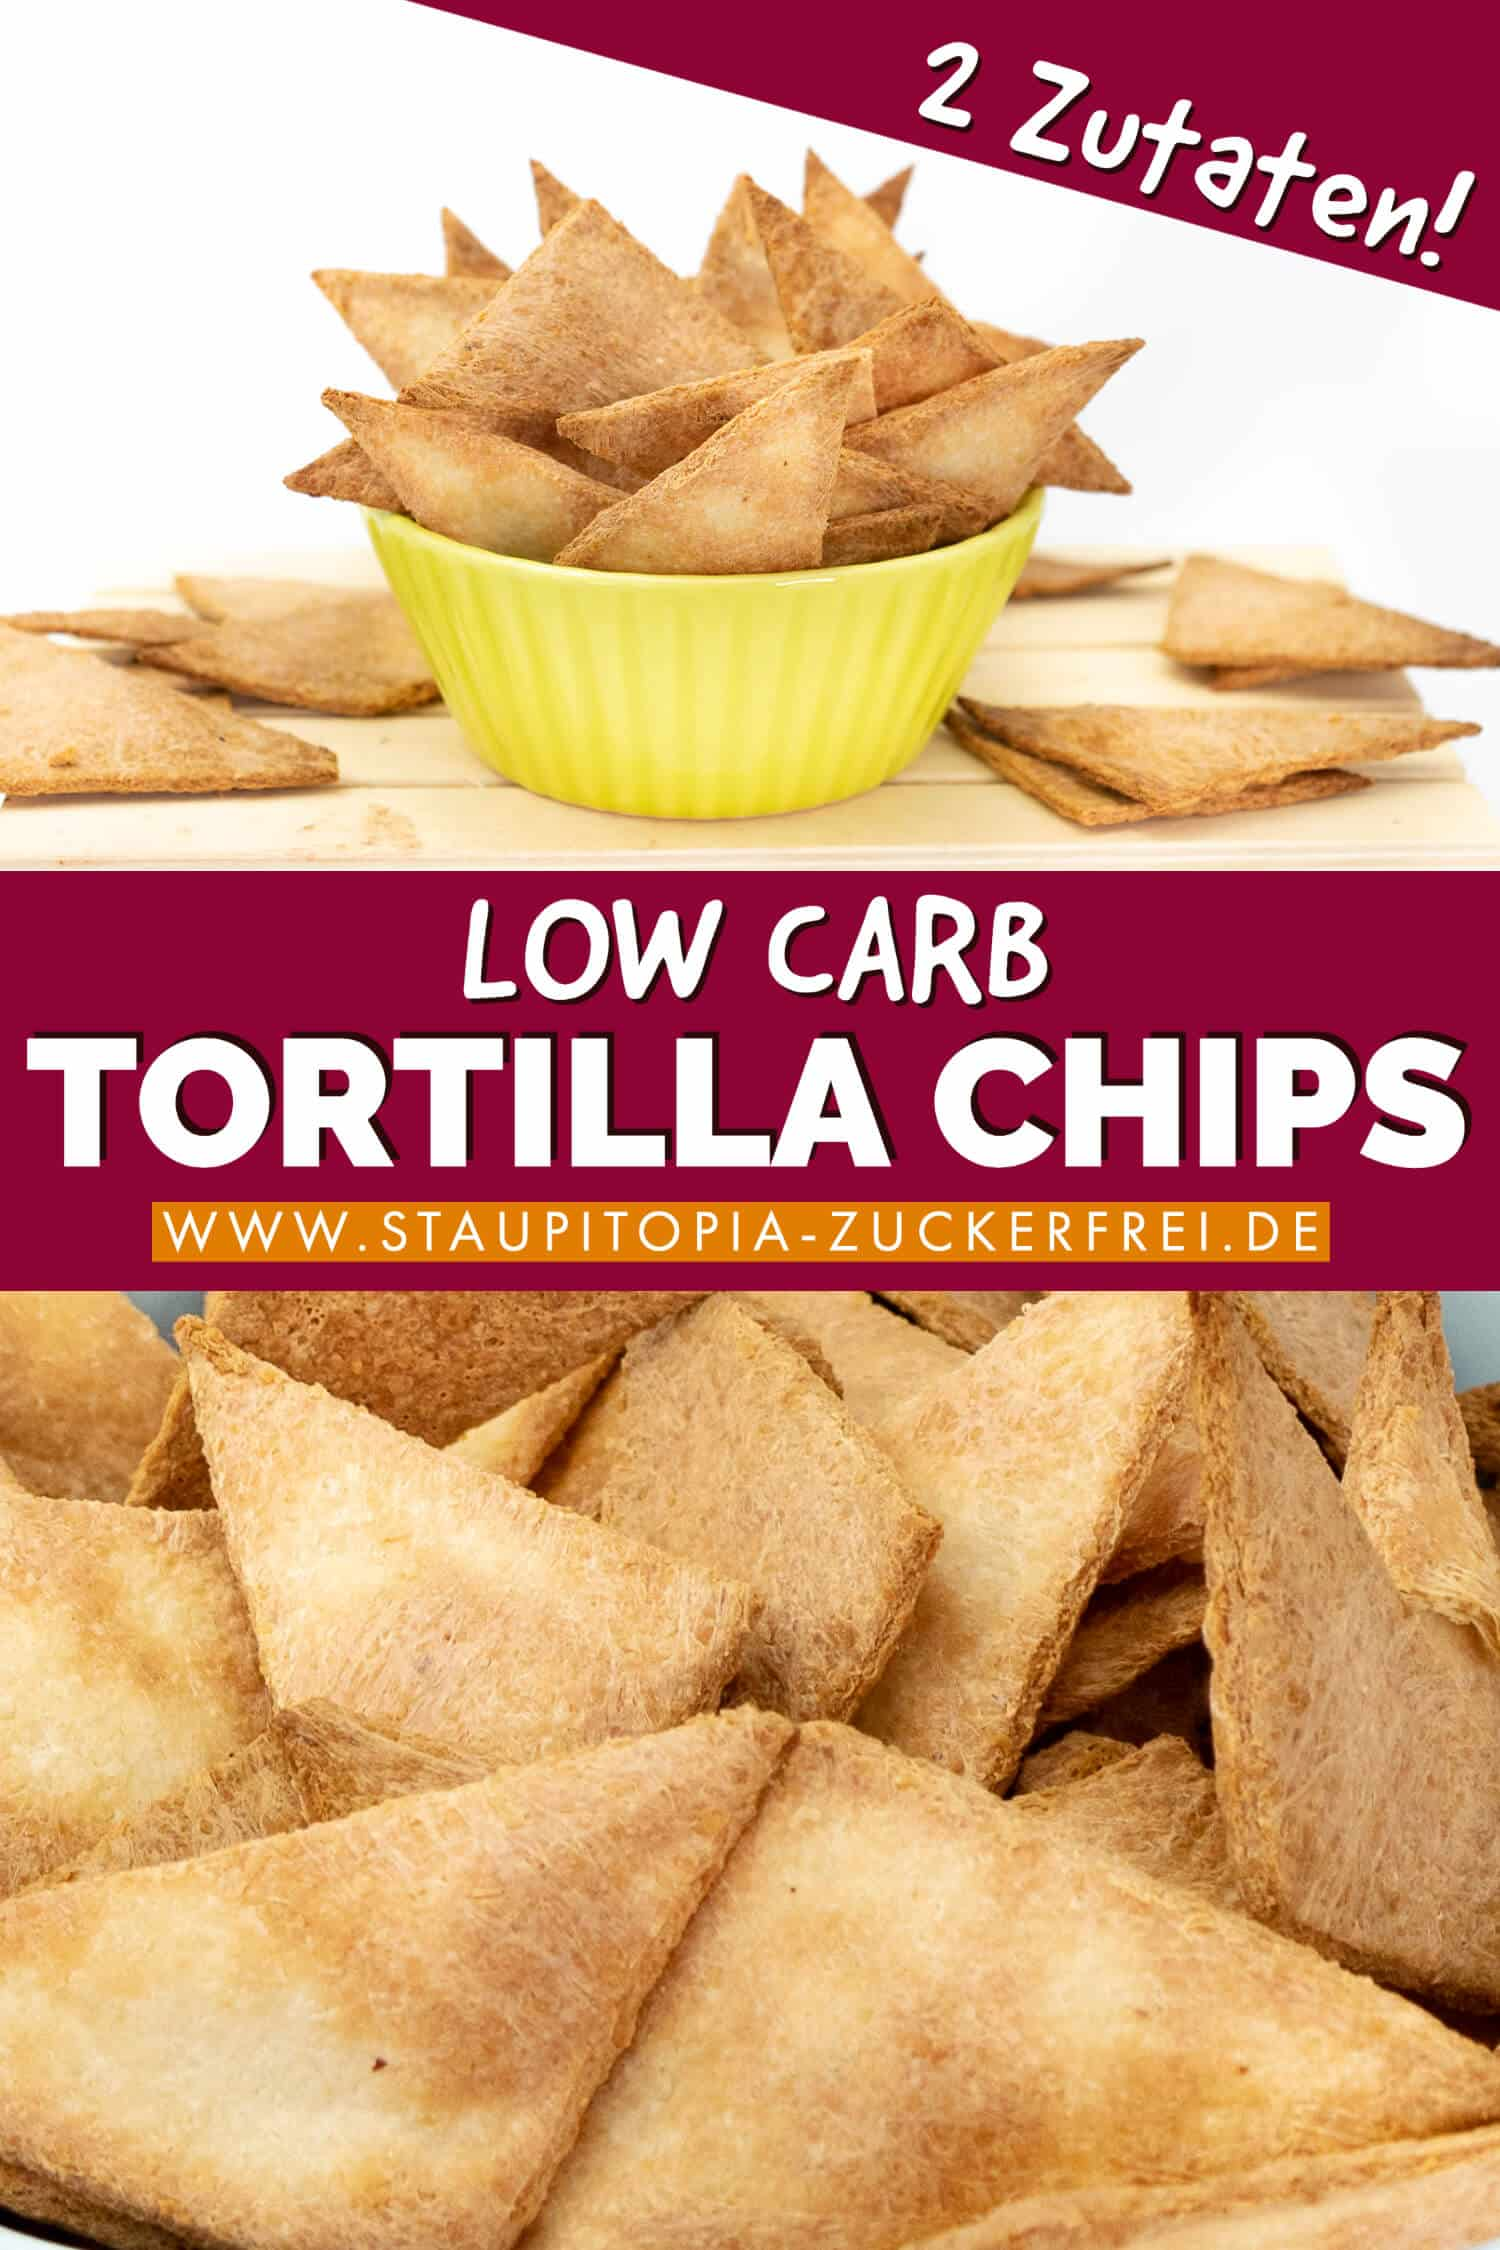 Low Carb Tortilla Chips selbst machen